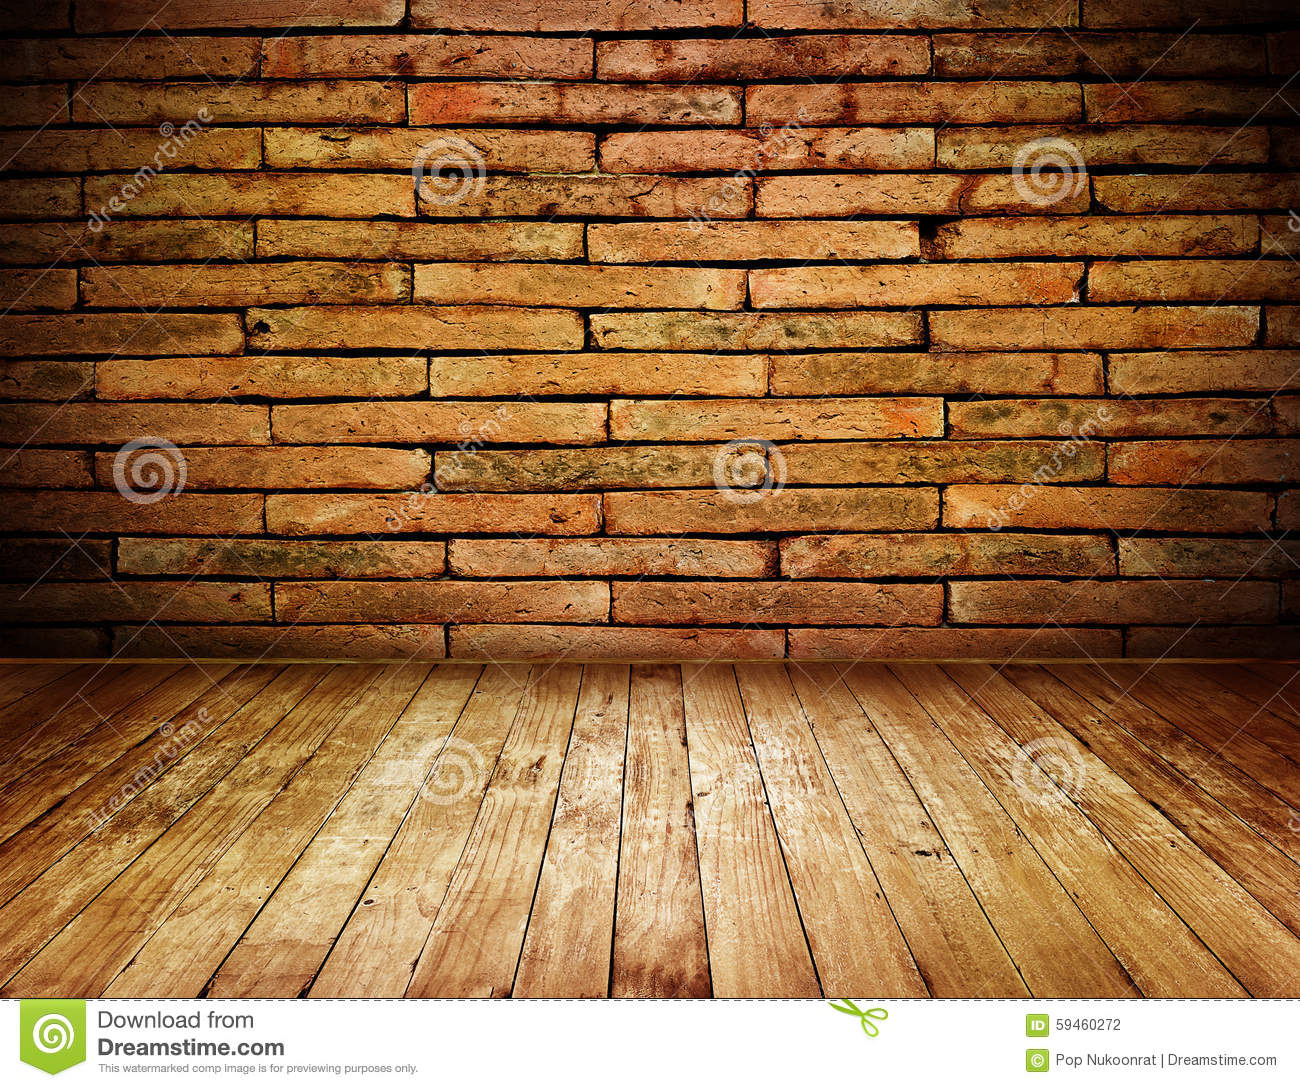 Z Brick Flooring : Room interior grunge vintage with red brick wall and wood